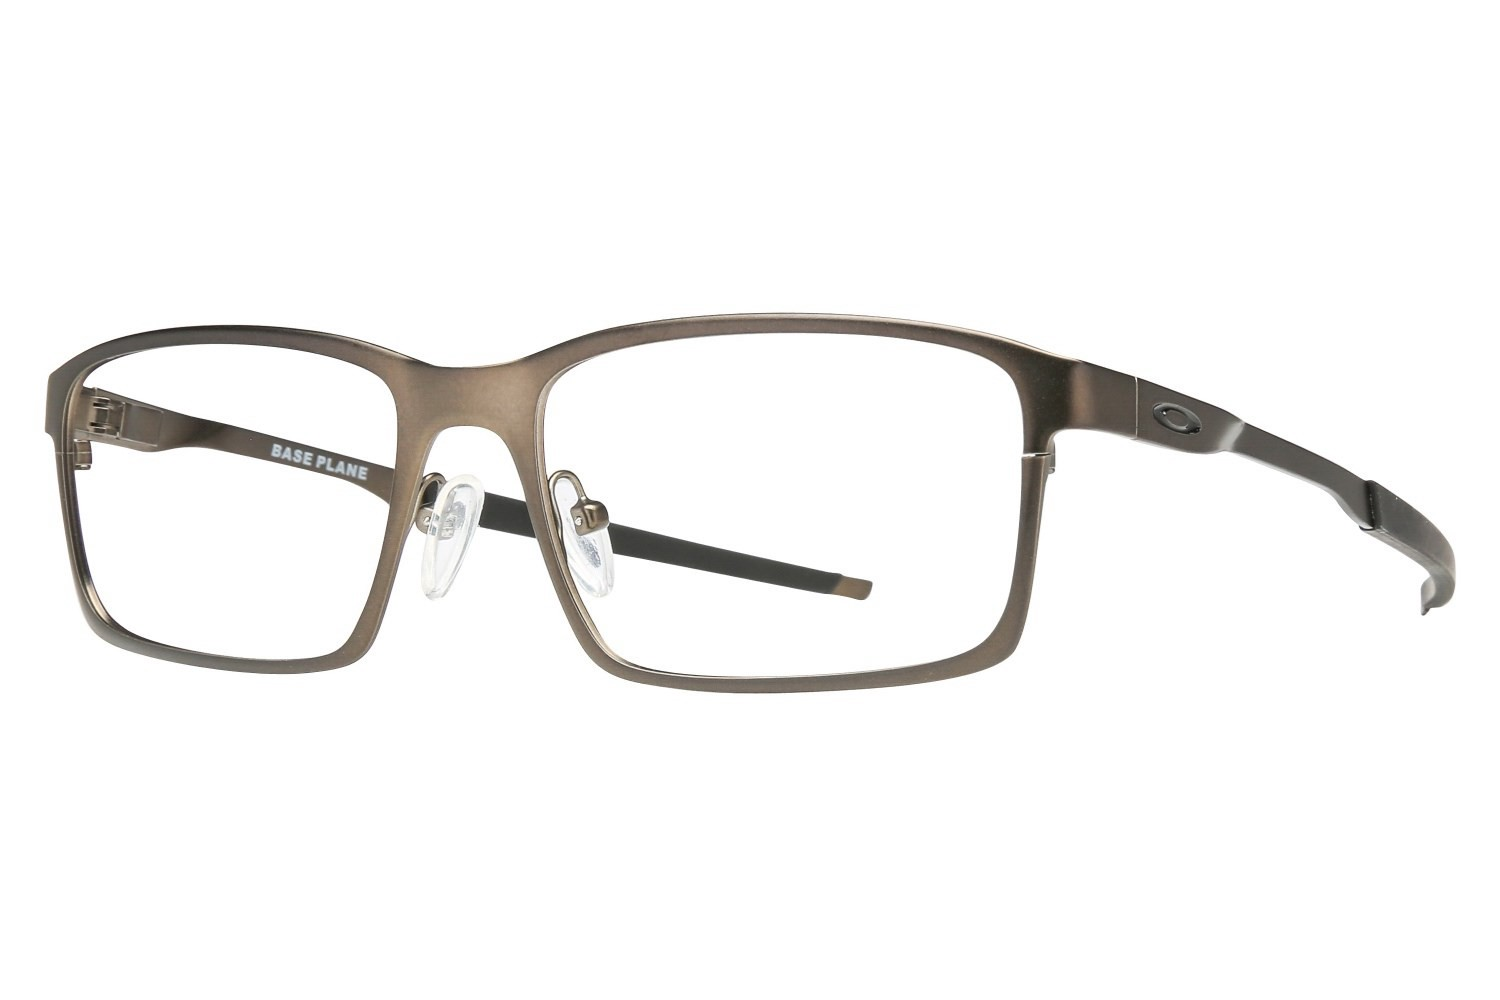 3bcab5194d Review Oakley Base Plane (54) Prescription Eyeglasses